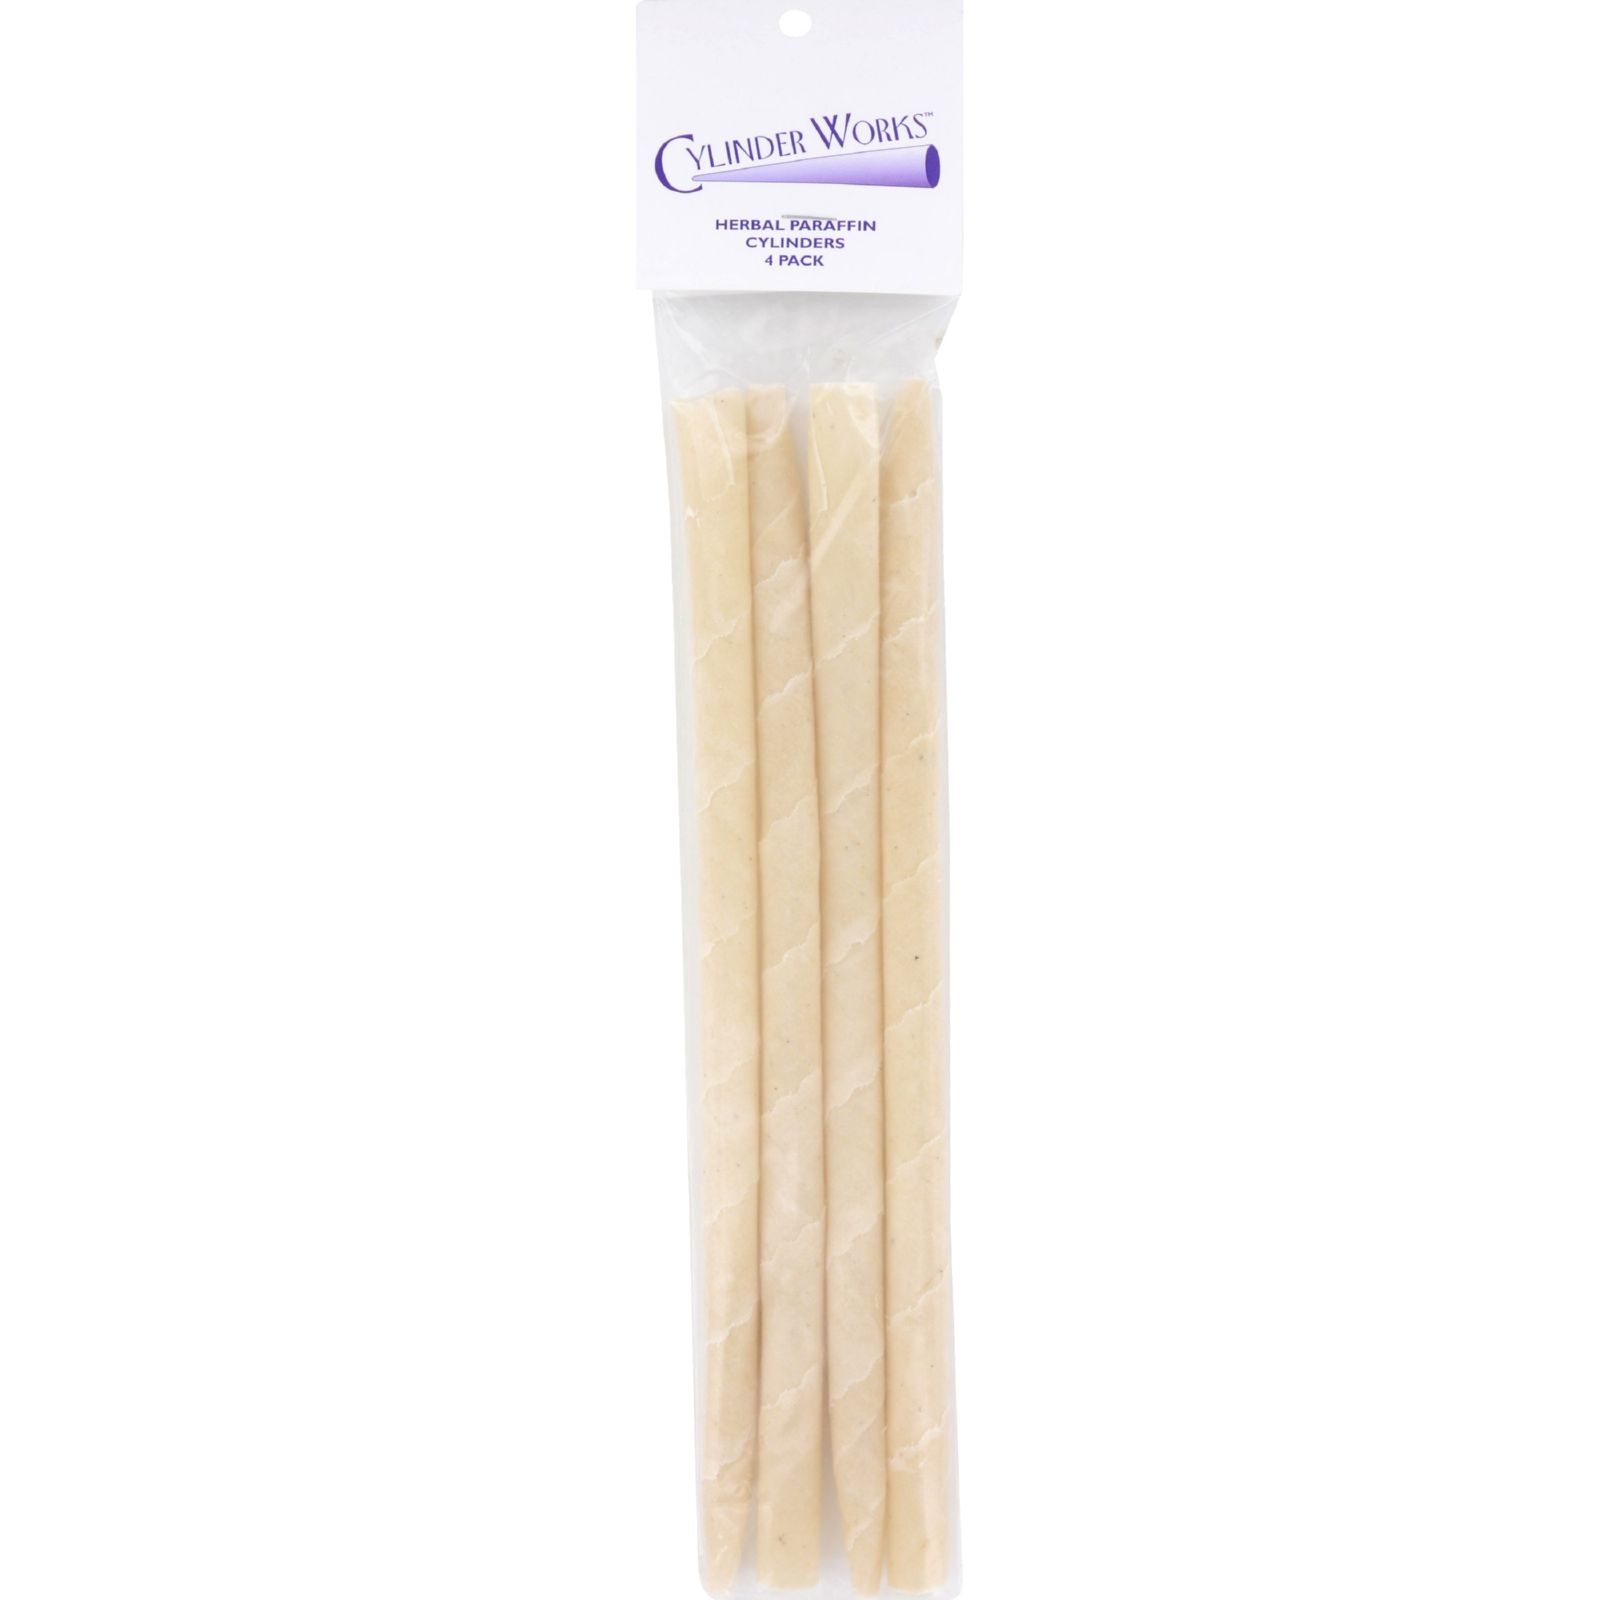 Cylinder Works Herbal Paraffin Ear Candles 4 Pack by Cylinder Works